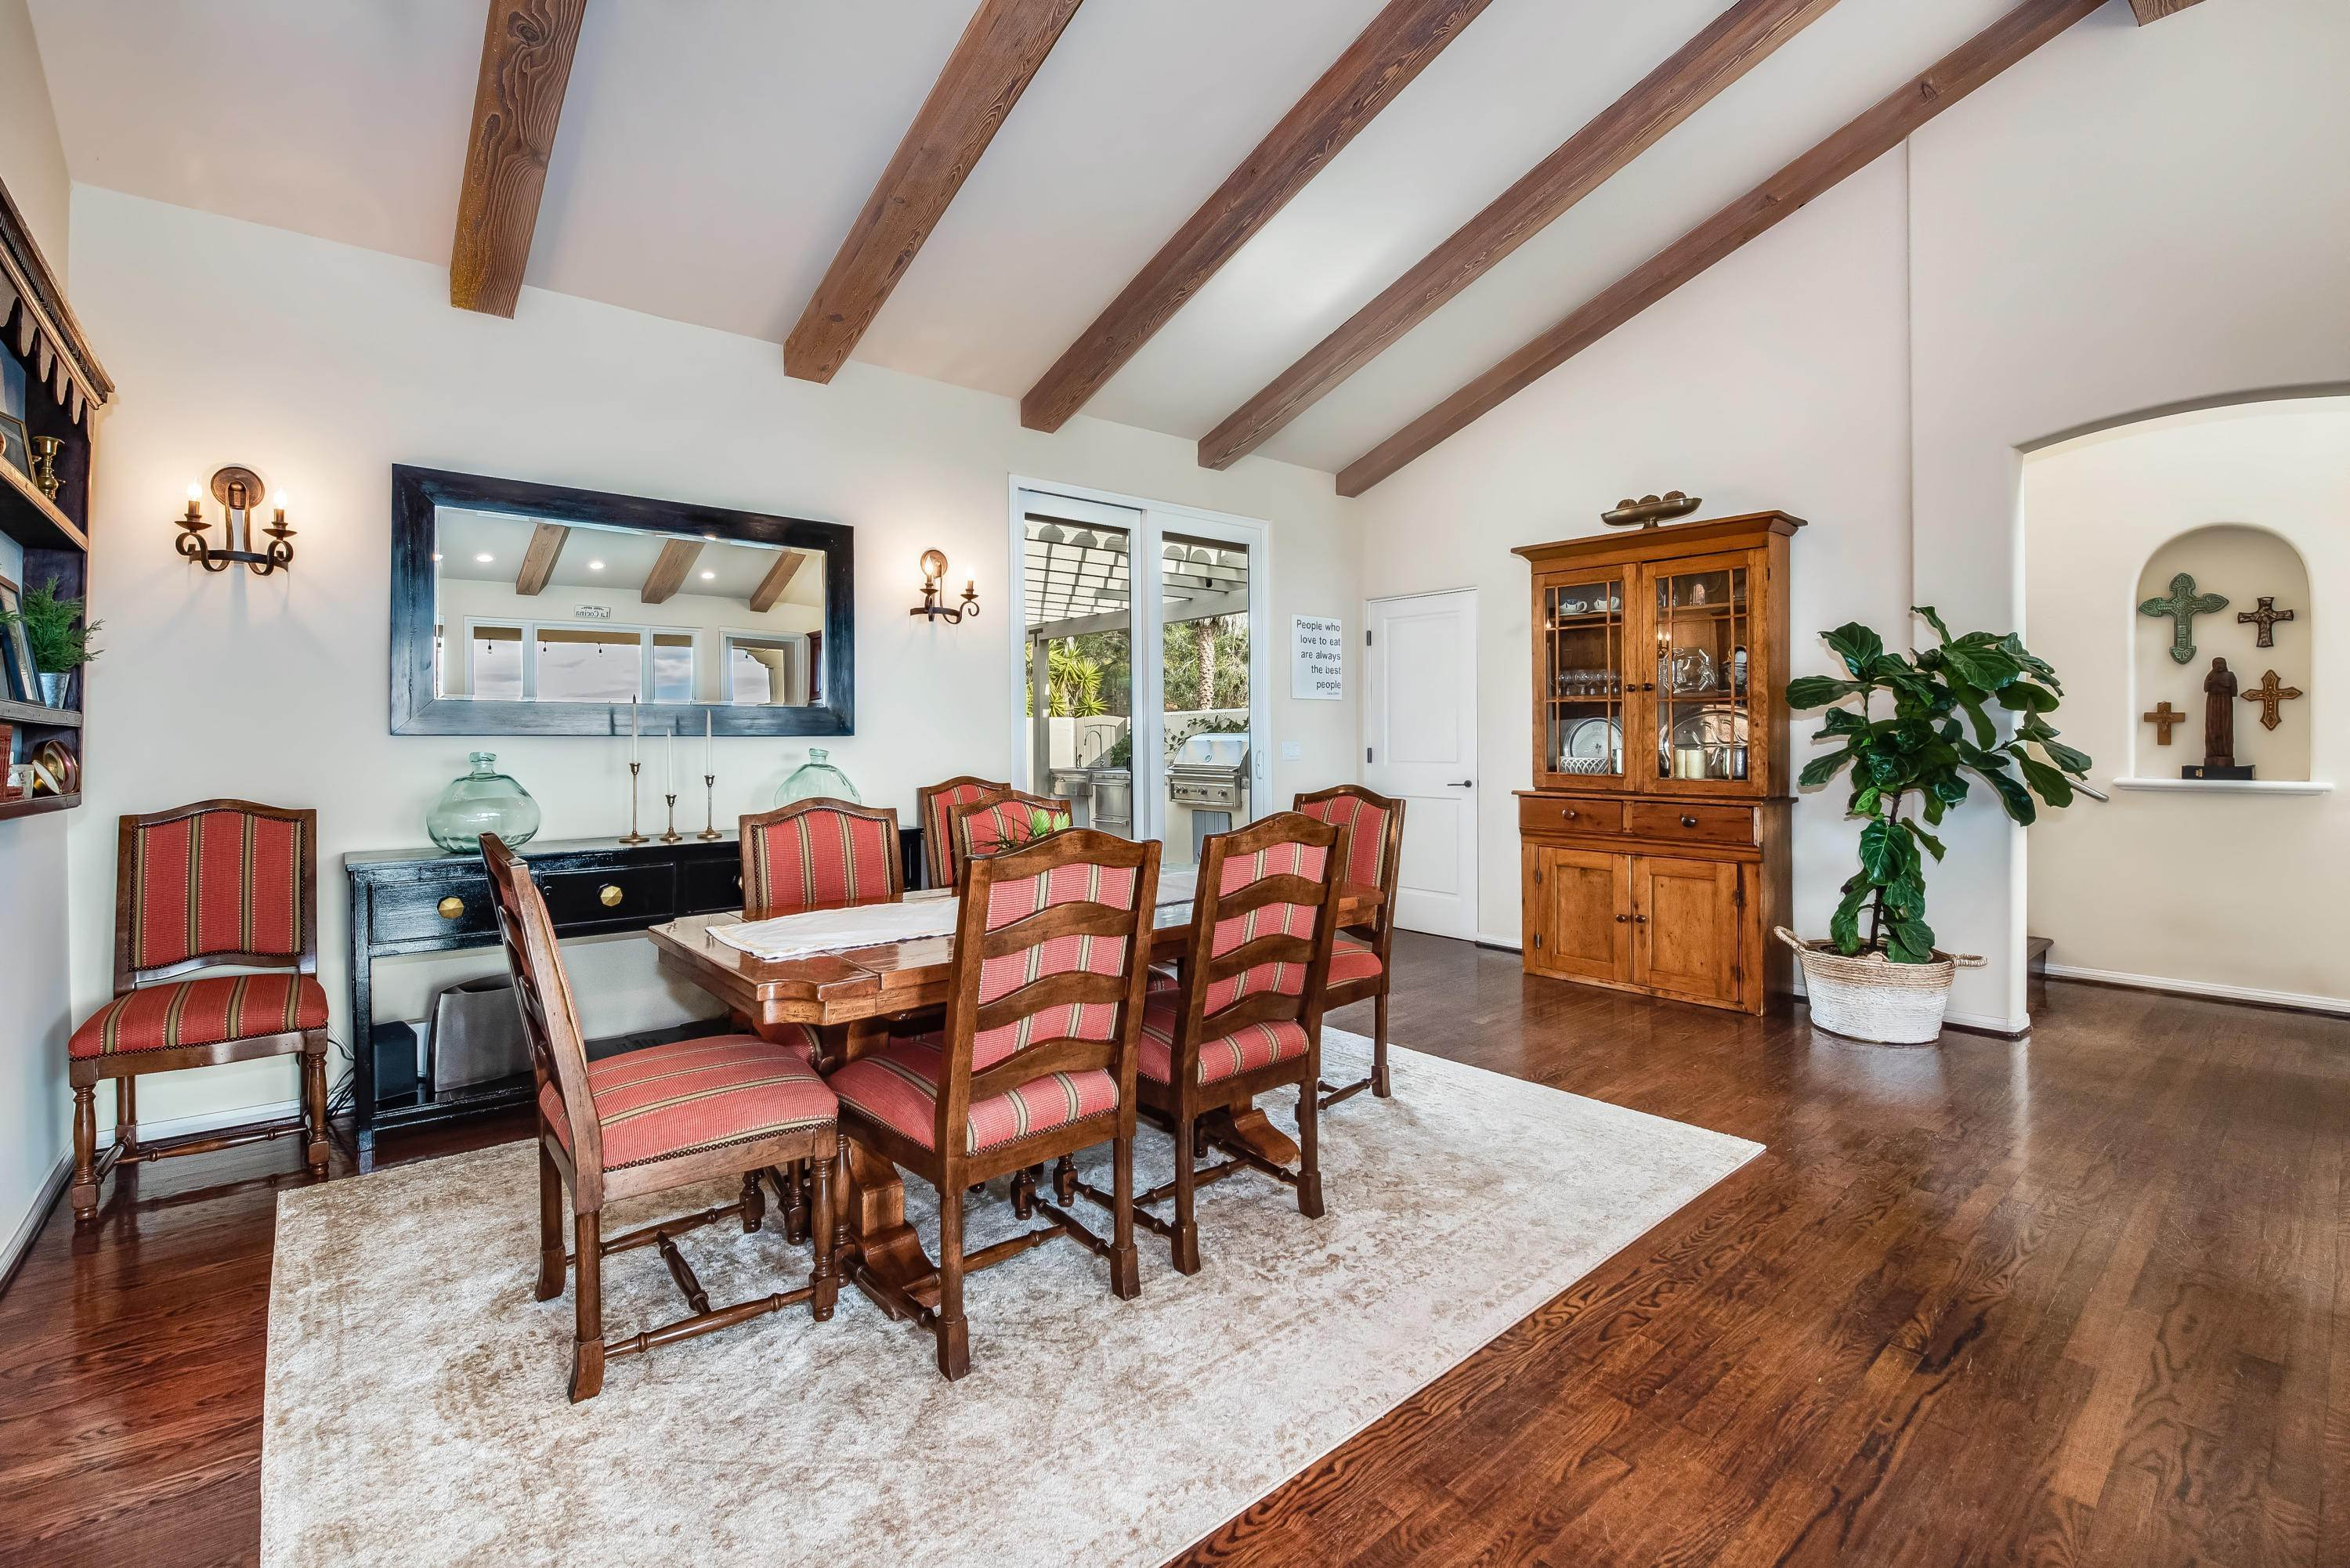 6. Estate for Sale at 4478 Meadowlark Lane Santa Barbara, California 93105 United States